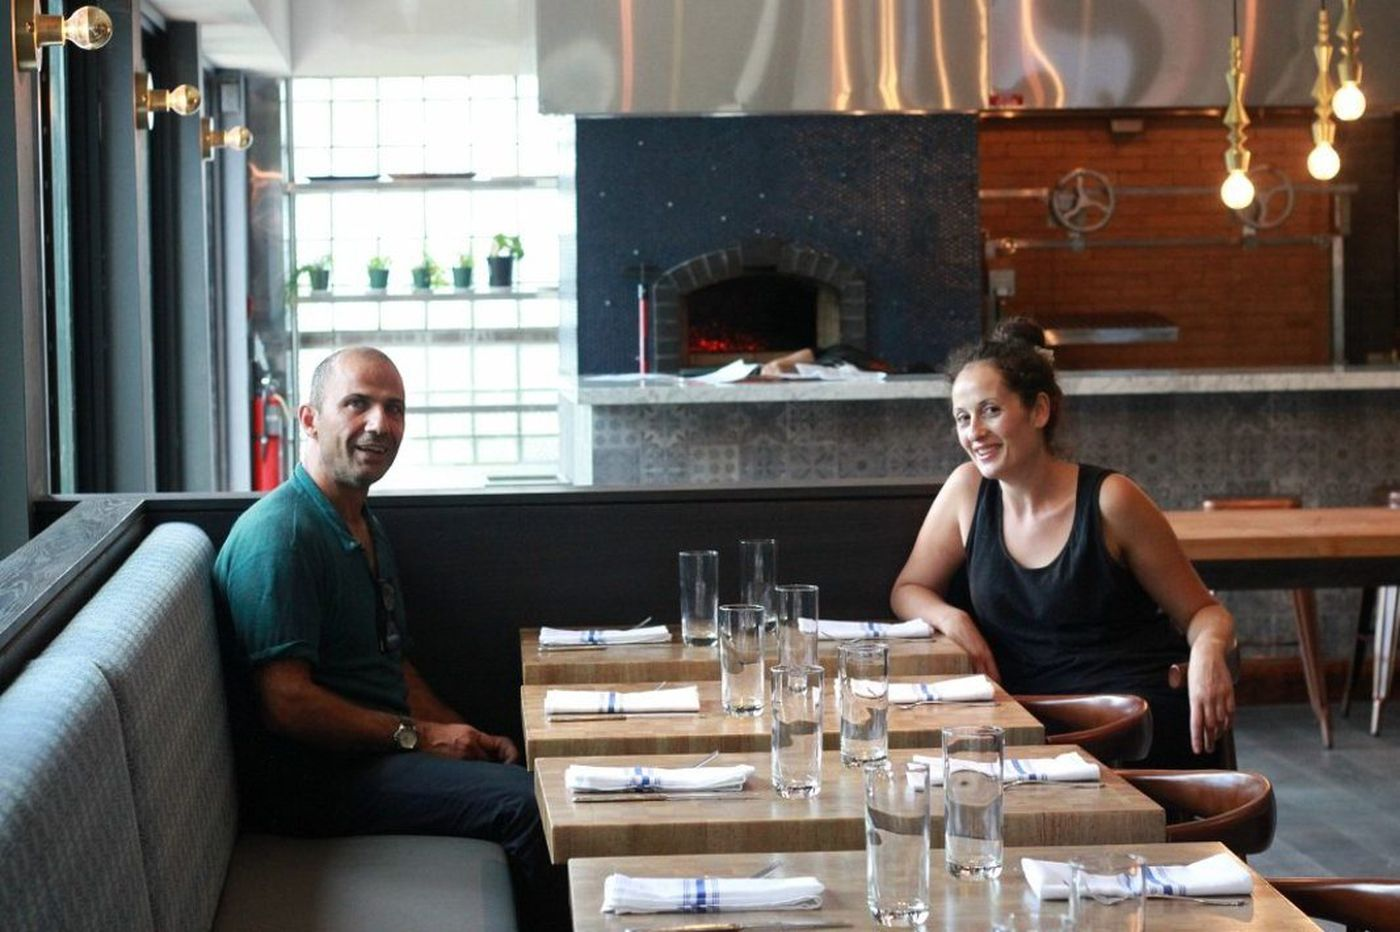 Kanella South closes, but owners say it's temporary